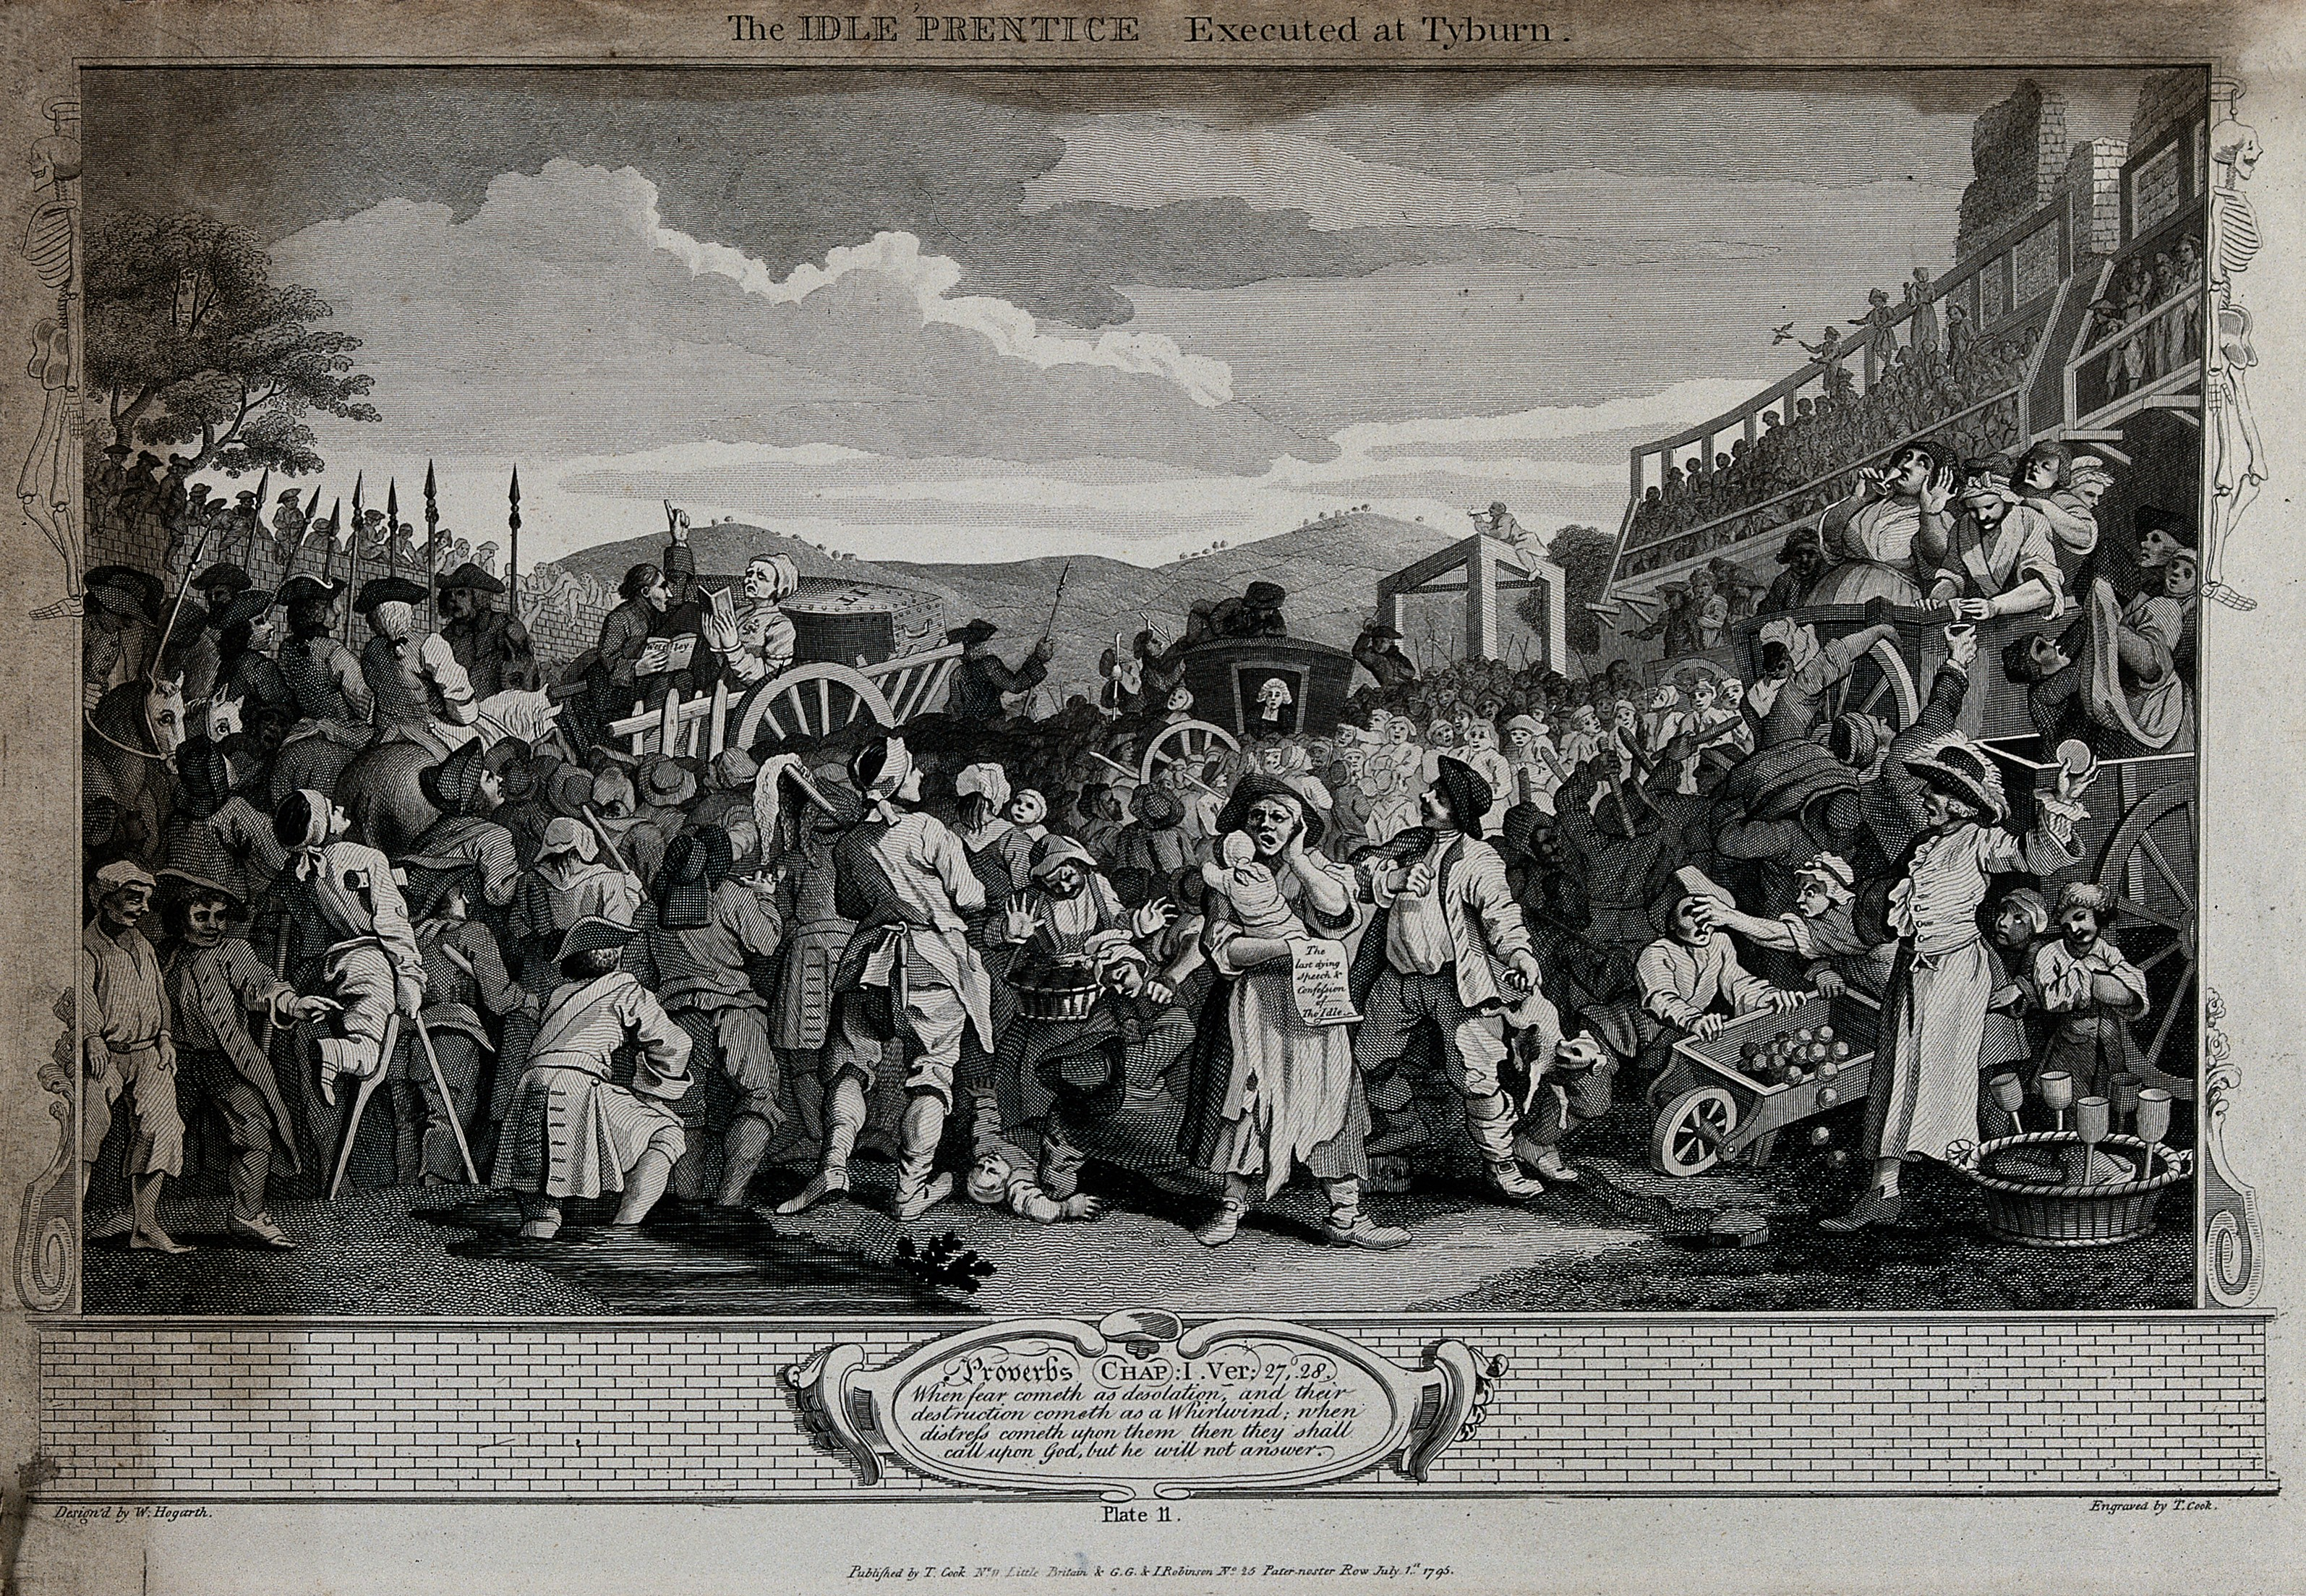 An image of a Tyburn execution from the late 18th century.